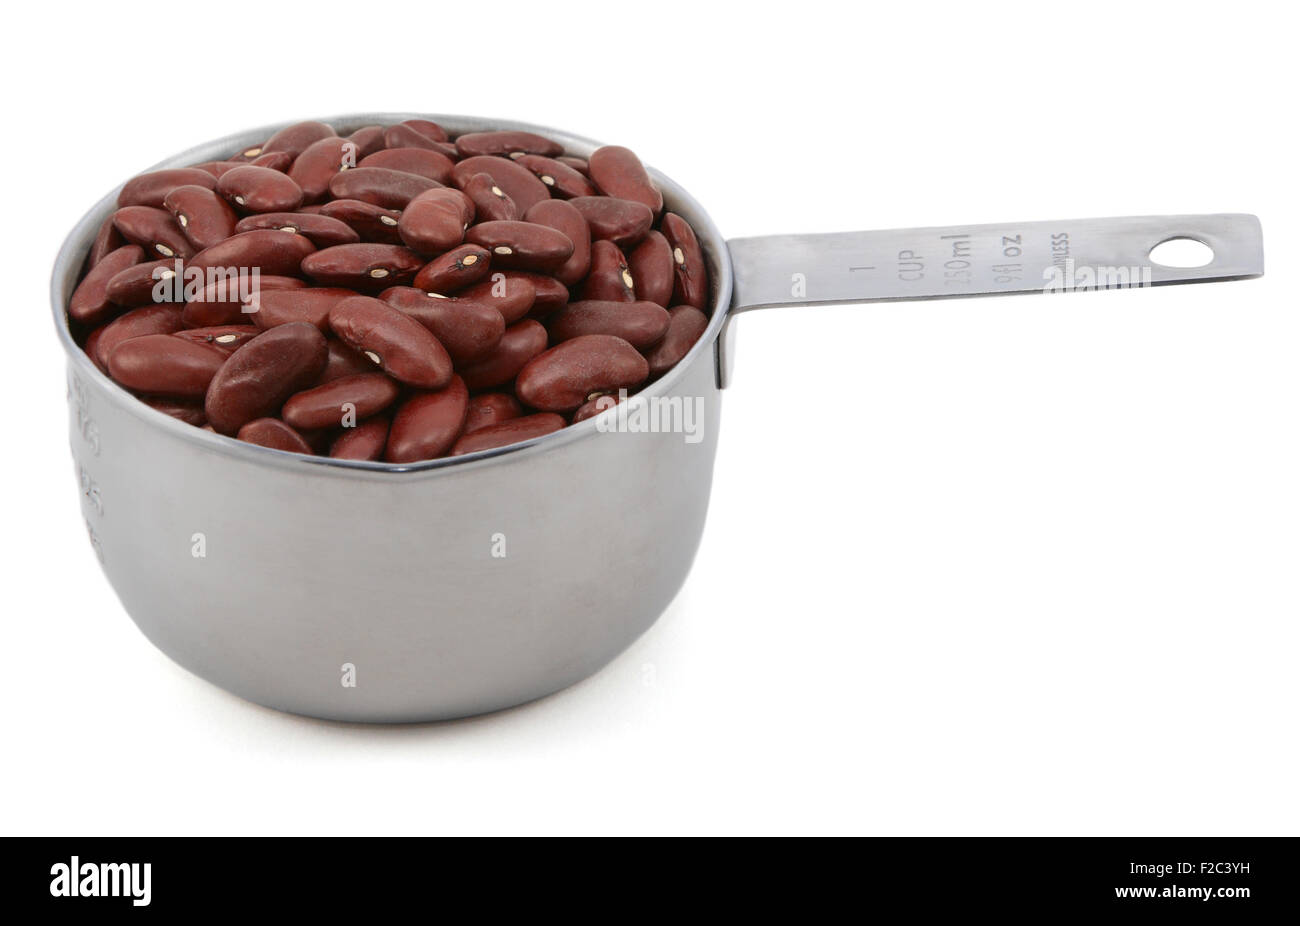 Red kidney beans in an American measuring cup, isolated on a white background Stock Photo